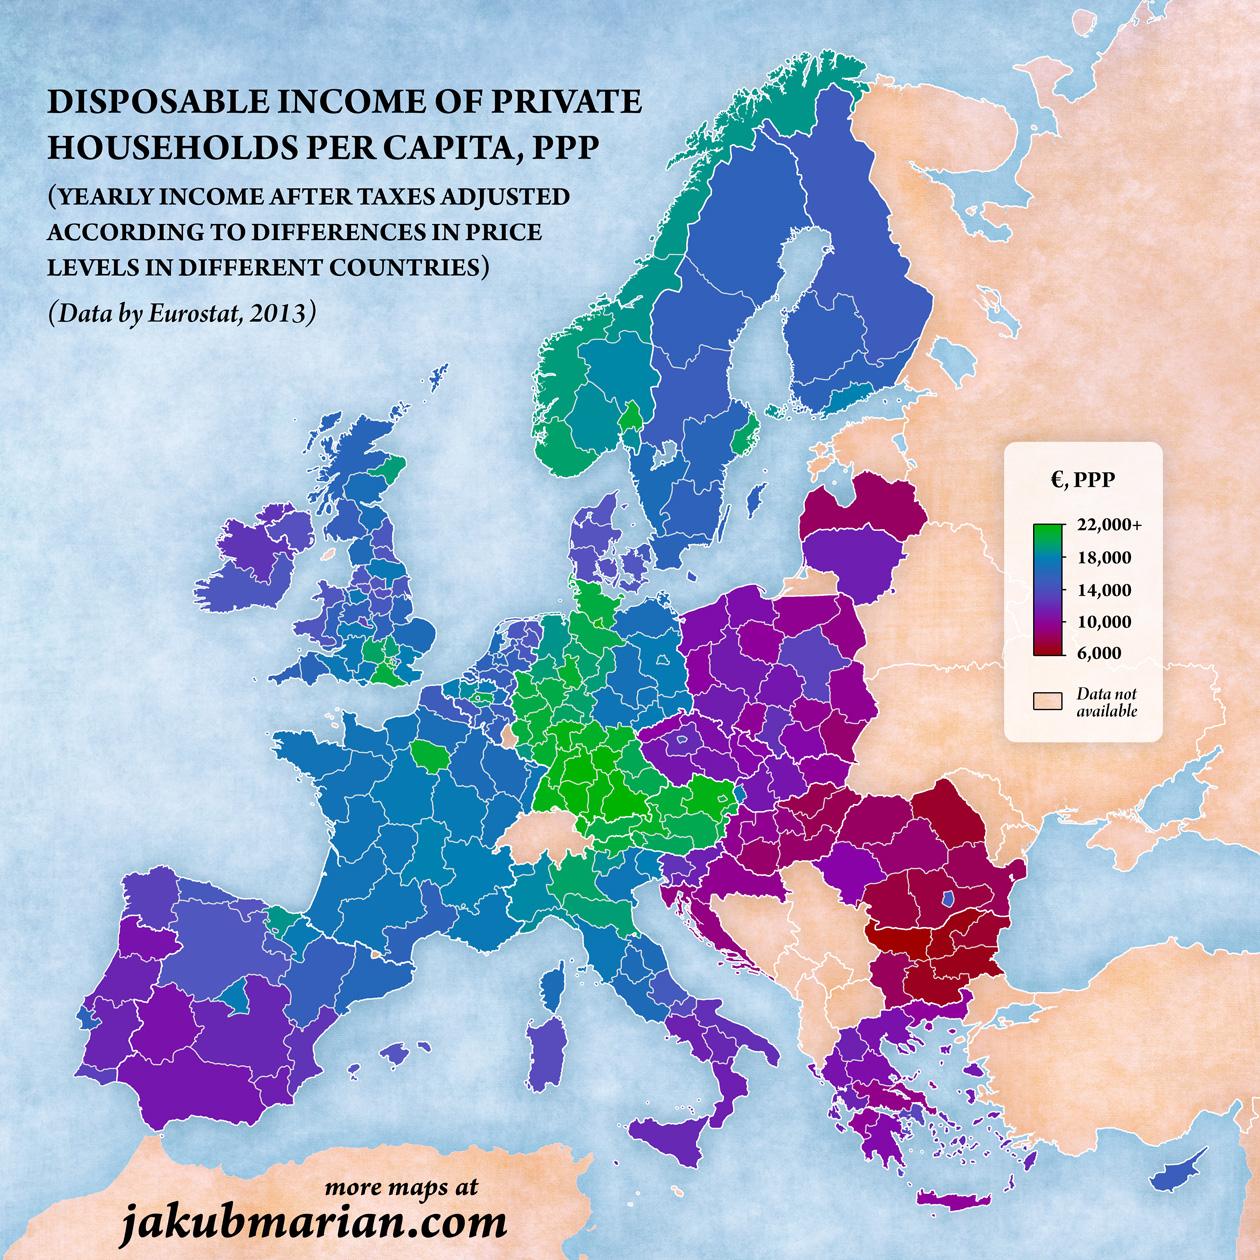 Disposable income in Europe